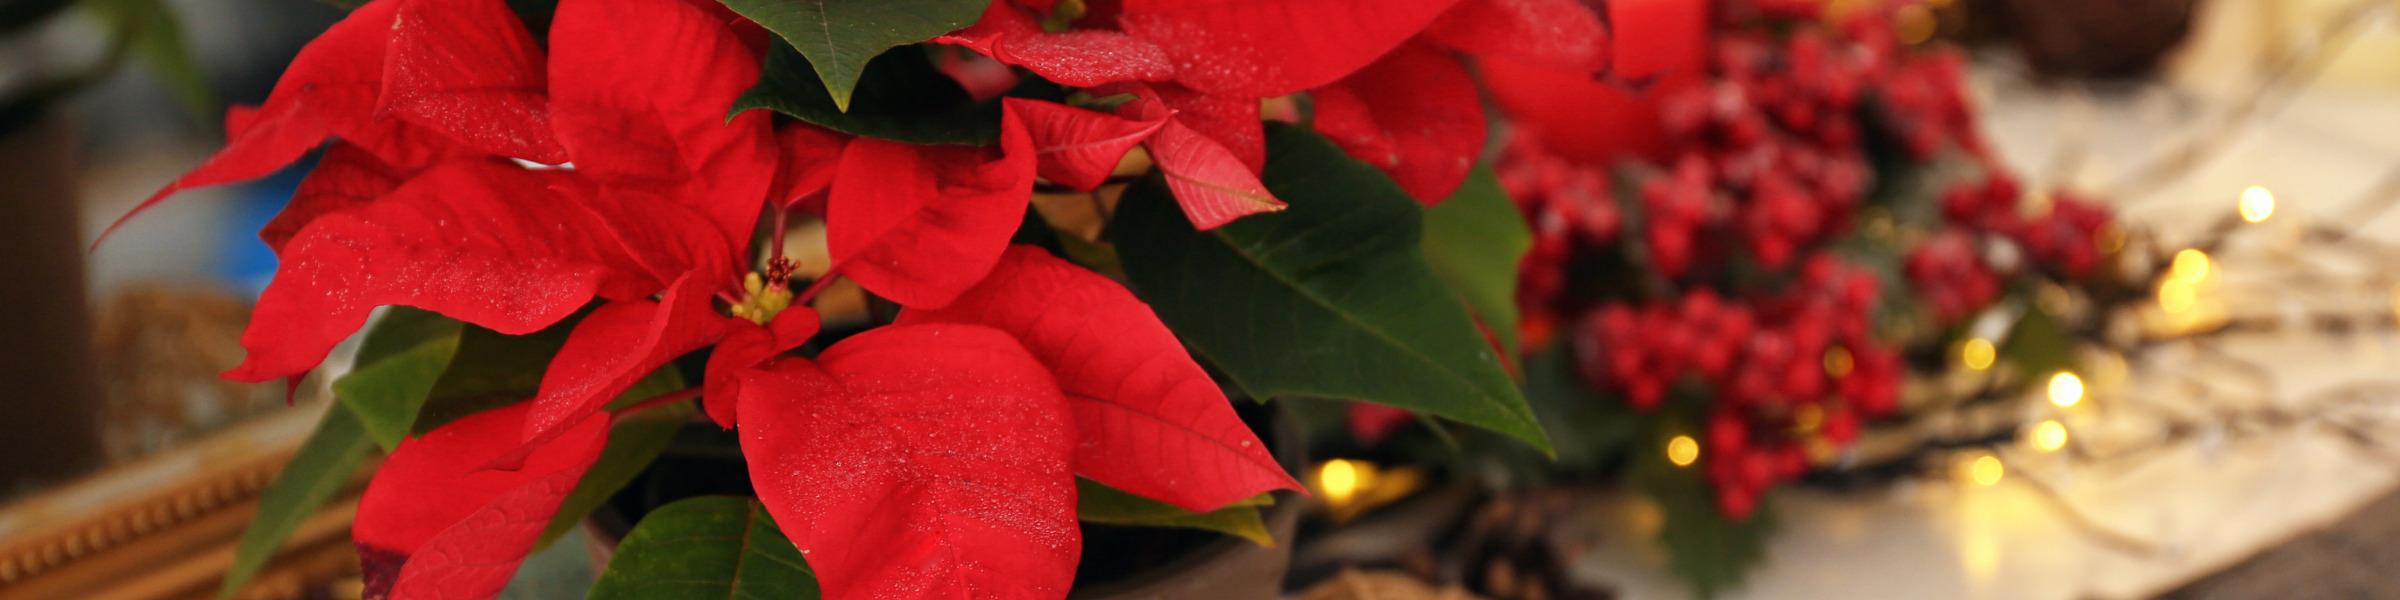 Privacy Policy Header Image Poinsettia Sales